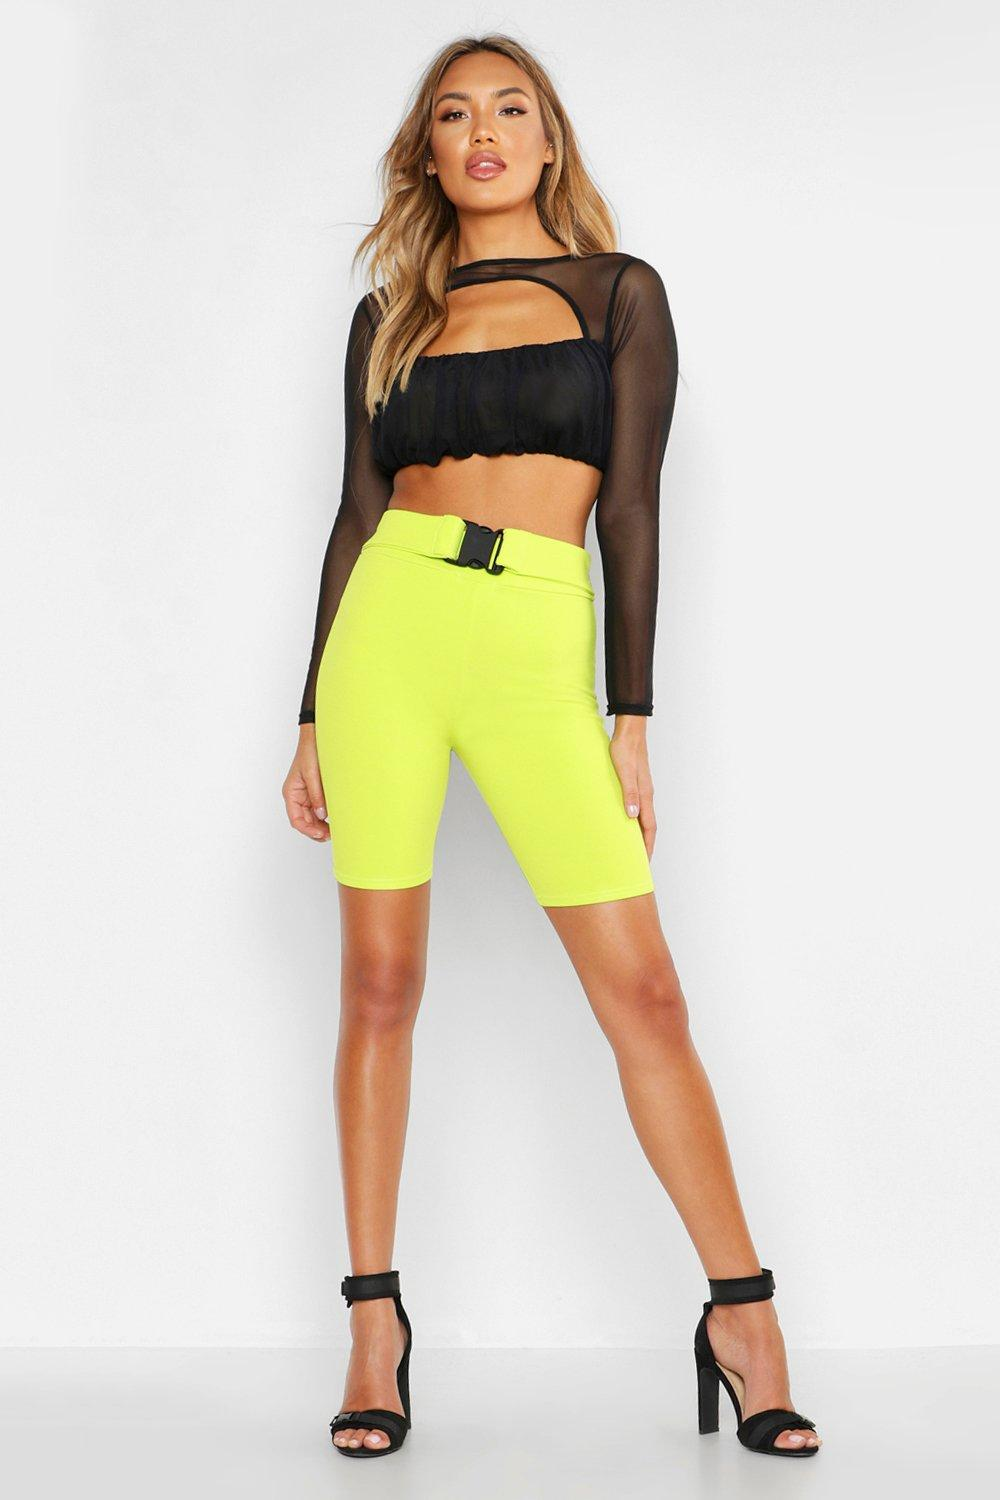 009f2b1fba7a4 Keyhole Detail Ruched Mesh Crop Top. Hover to zoom